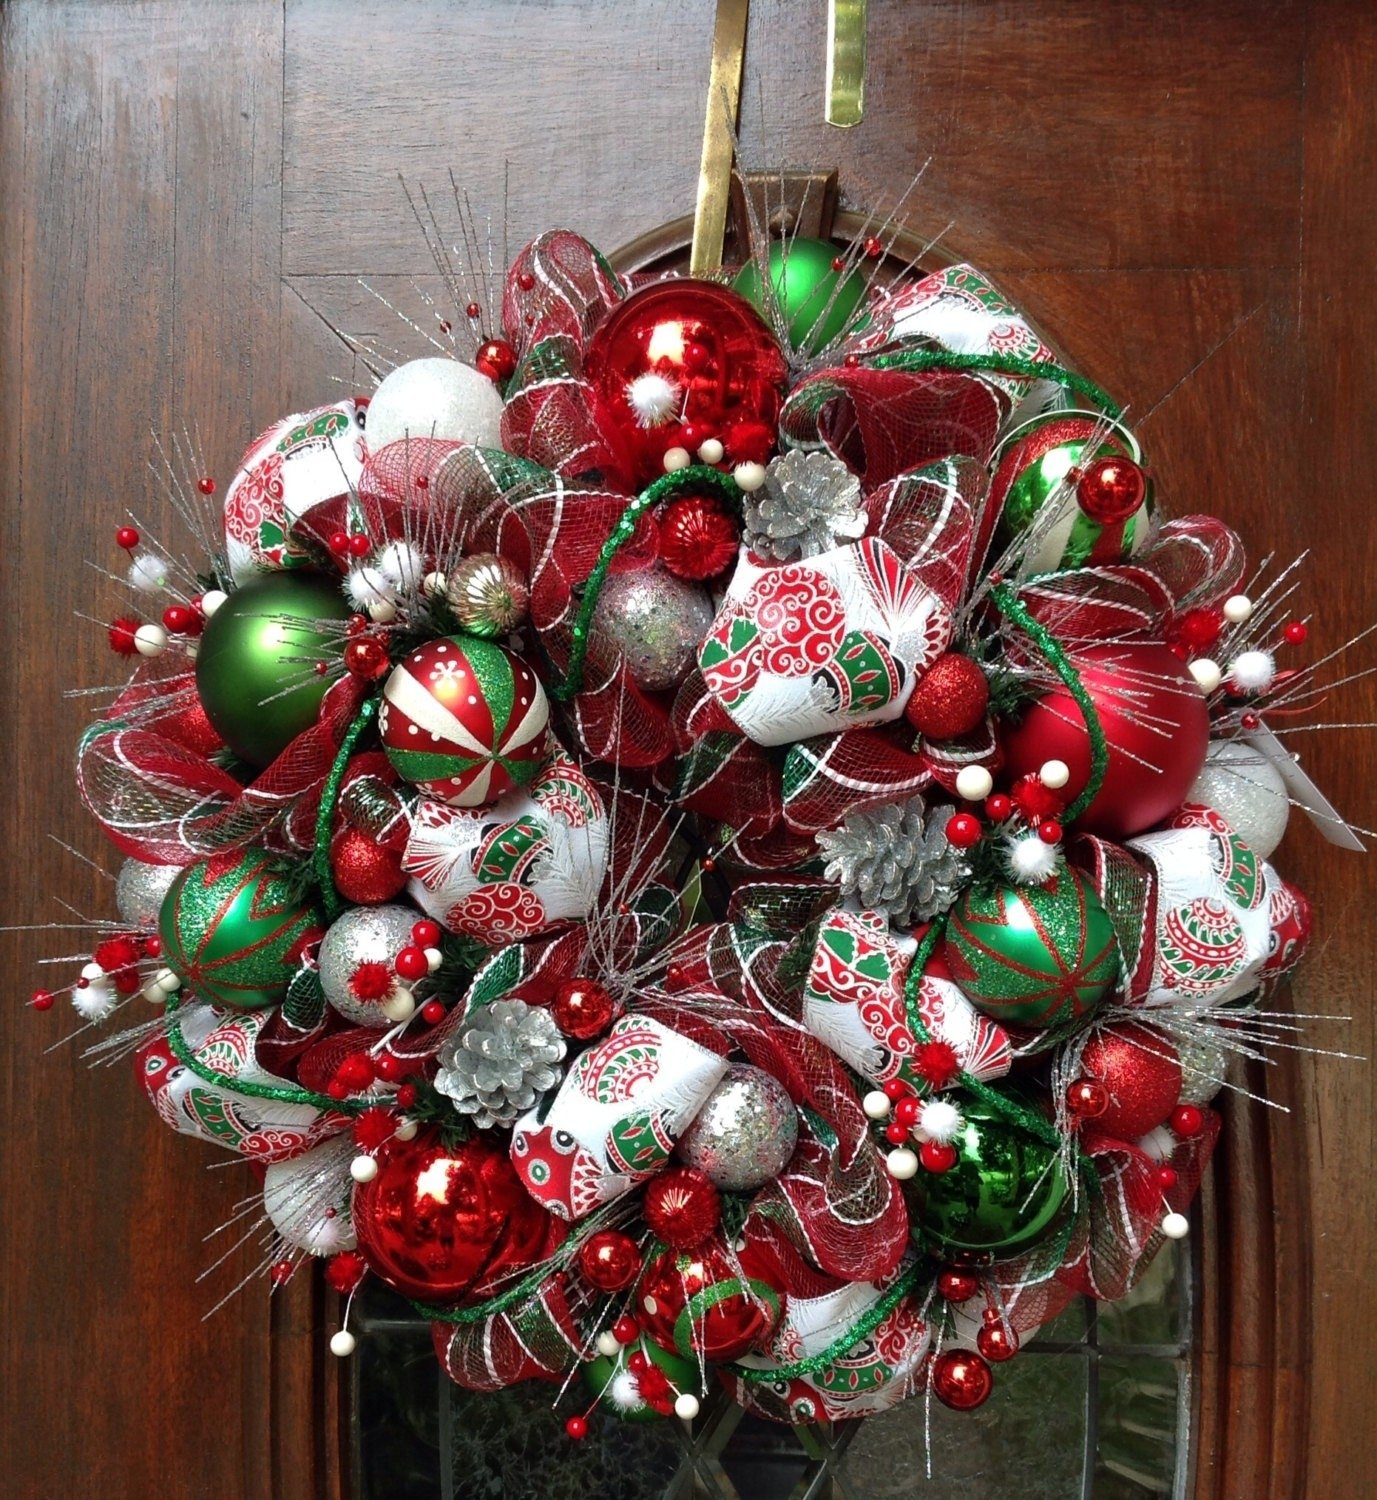 10 Ideal Deco Mesh Christmas Wreath Ideas 38 fall deco mesh wreath ideas from pelin horan loveitsomuch 1 2020